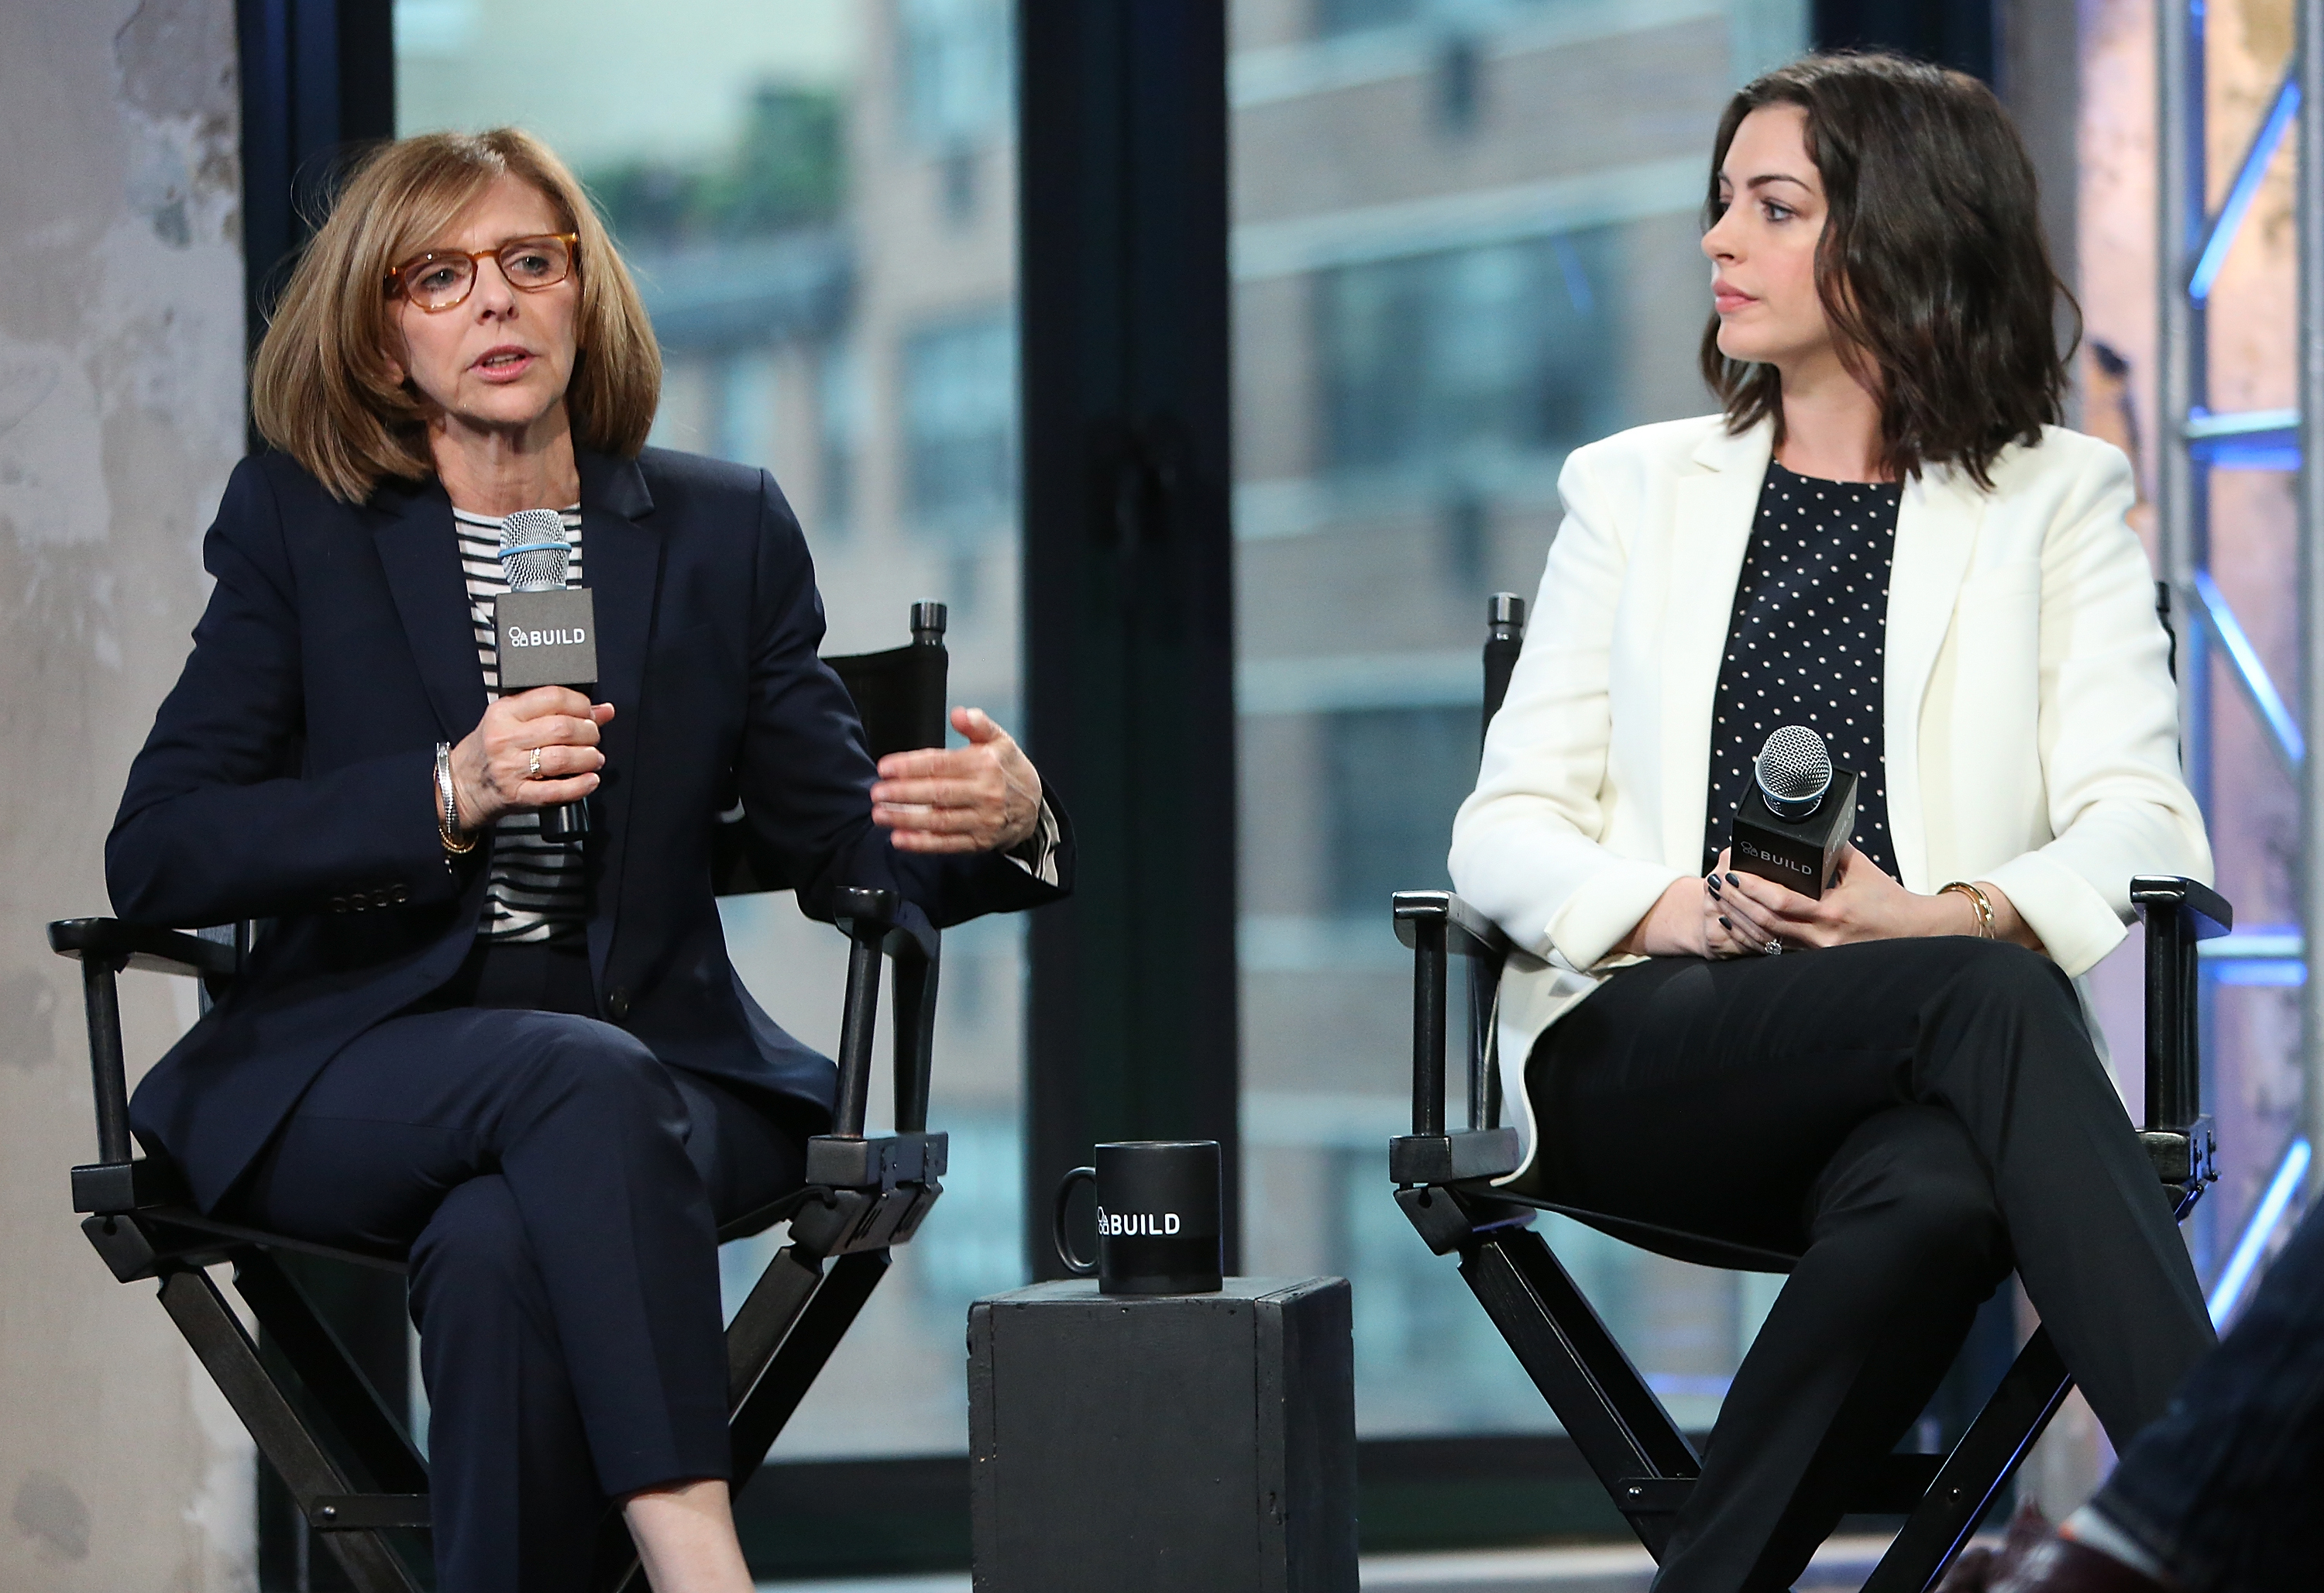 Director Nancy Meyers and Actress Anne Hathaway speak at AOL Build Presents  The Intern  at AOL Studios on Sept. 22, 2015 in New York City.